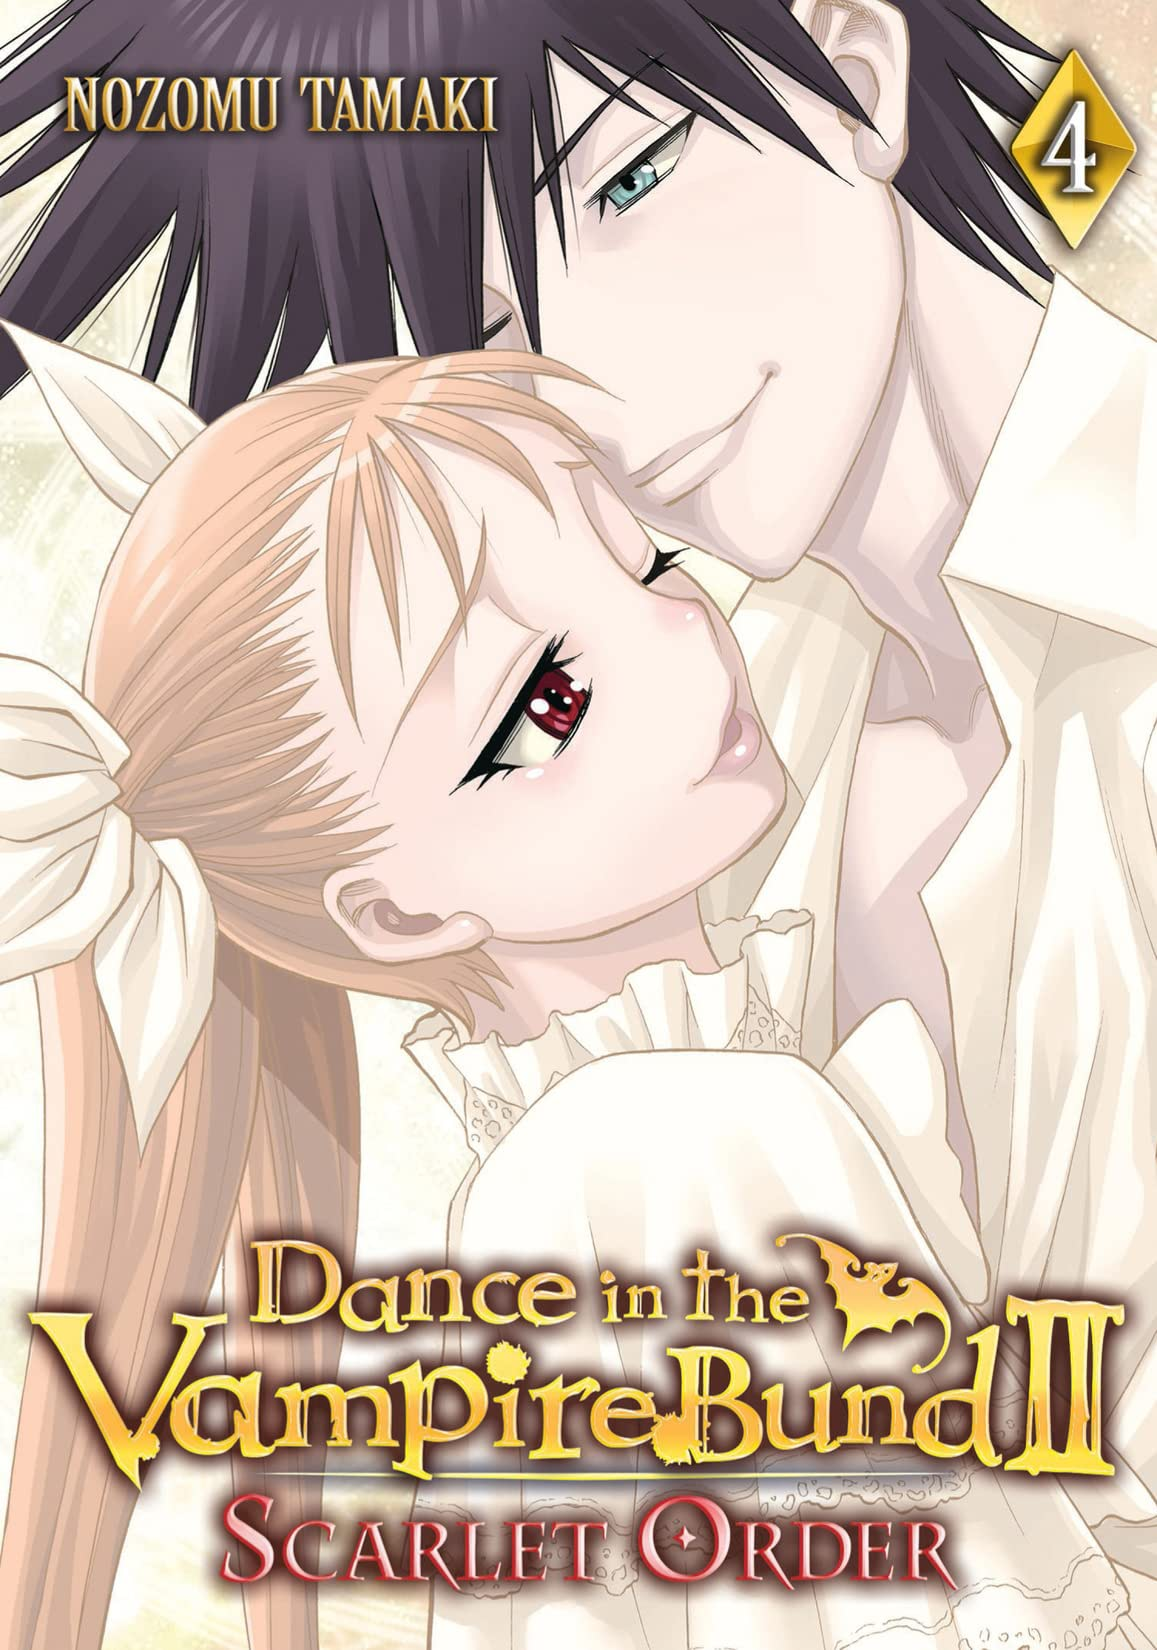 Dance in the Vampire Bund II: Scarlet Order Vol. 4